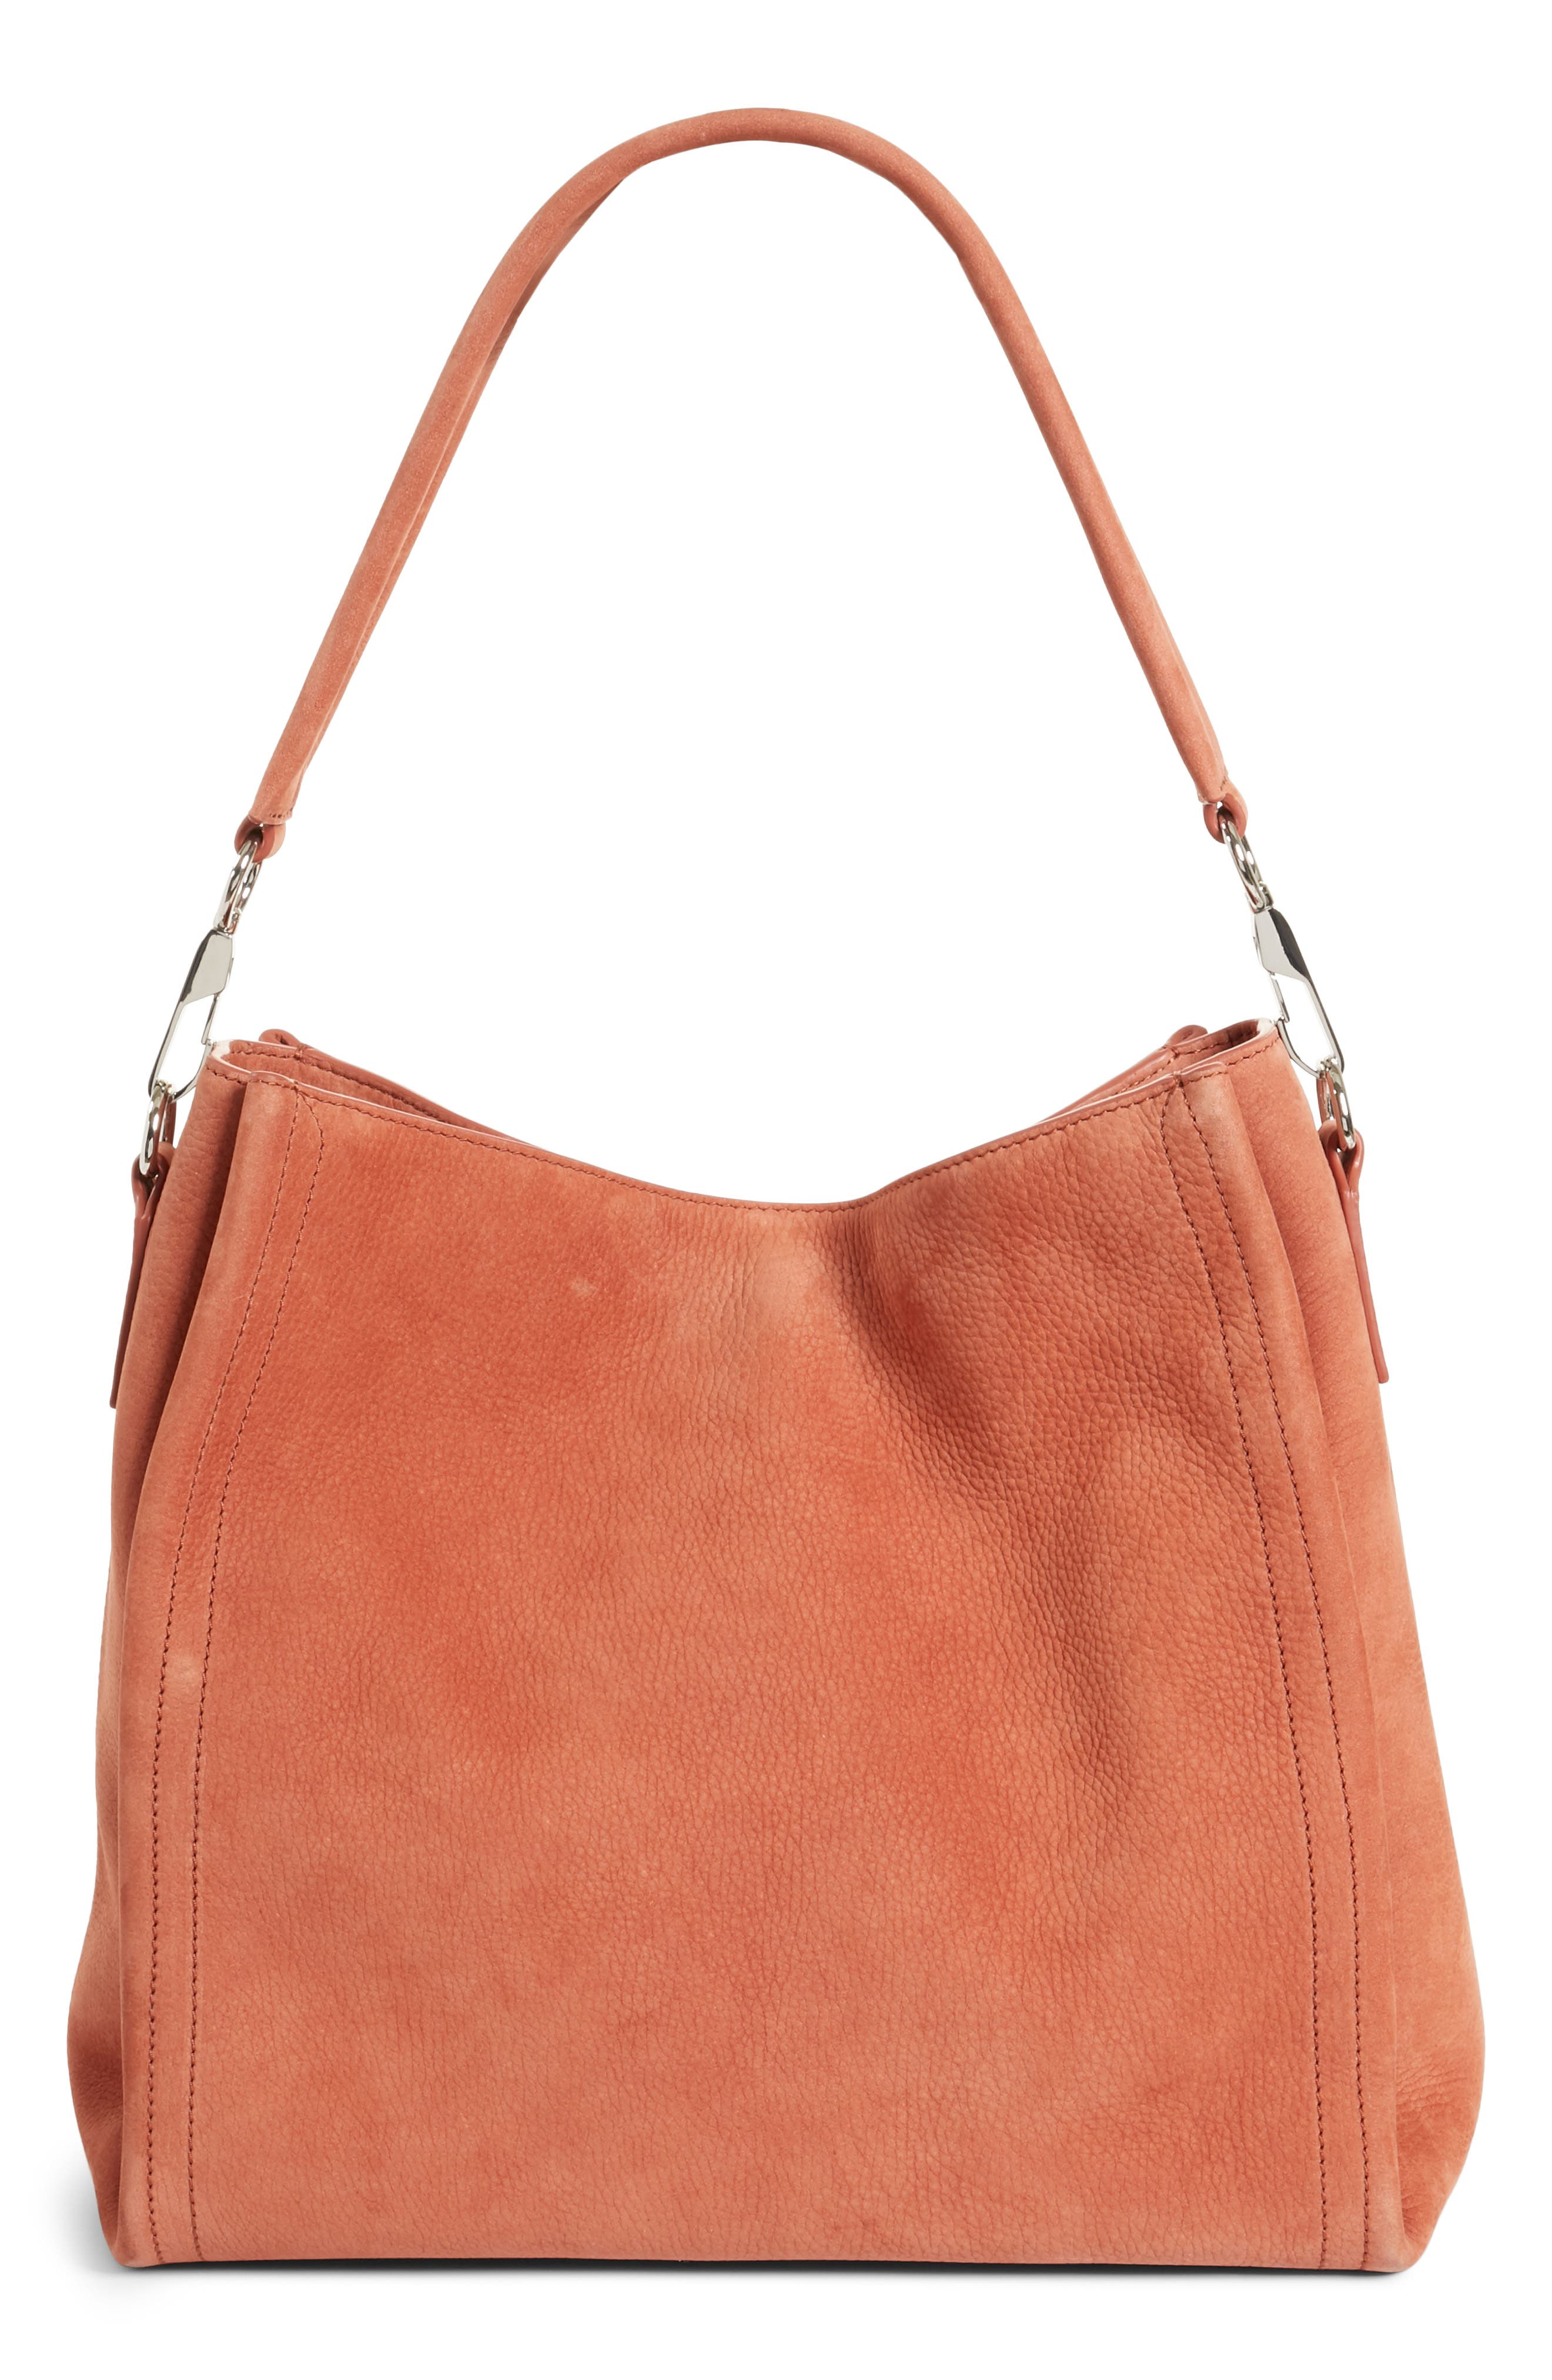 Darcy Pebbled Leather Hobo,                             Main thumbnail 1, color,                             200